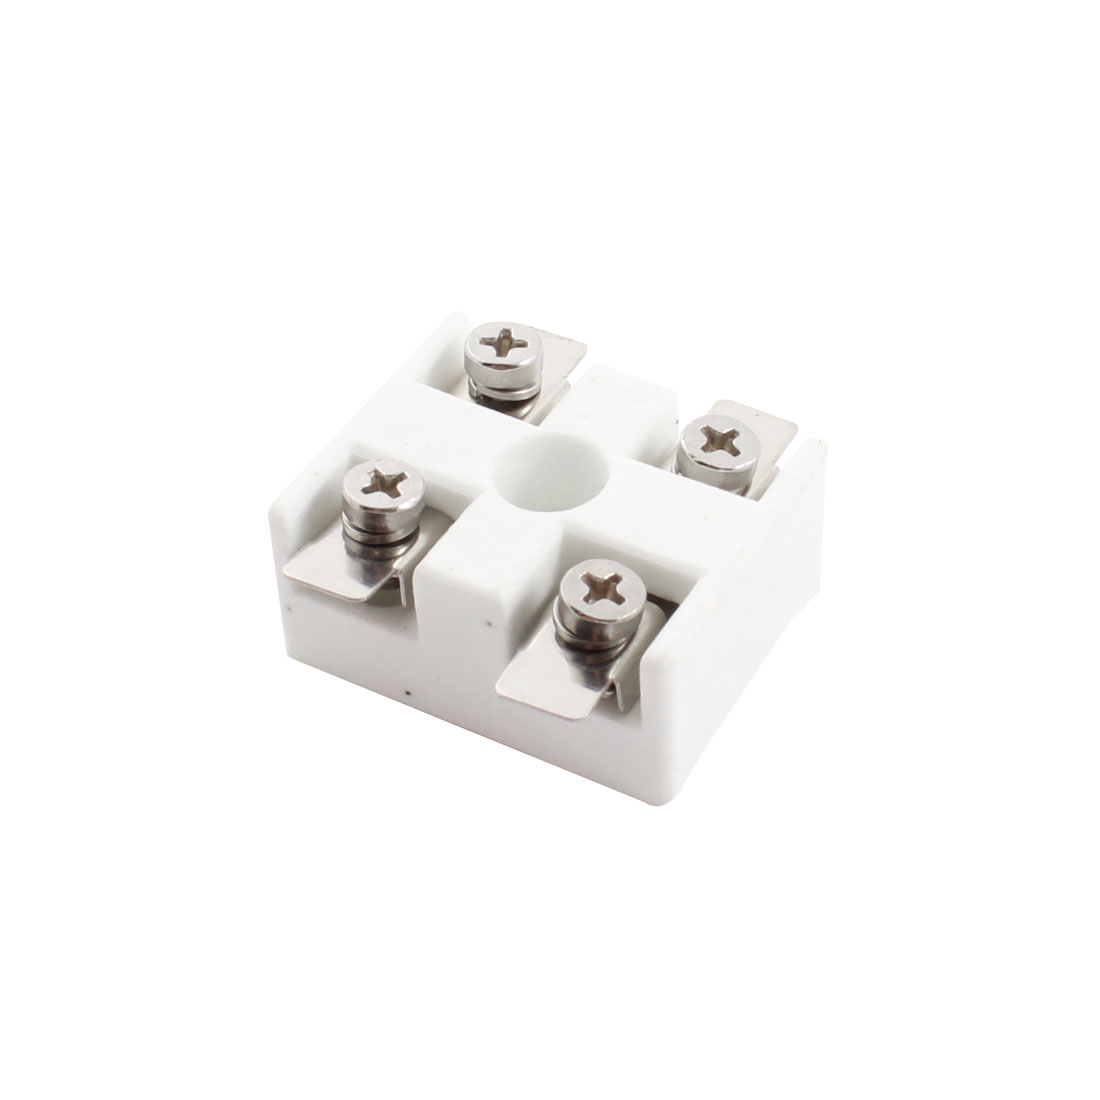 AC 600V 2 Rows 2 Positions Ceramic Base Barrier Terminal Block Wire Connector Strip